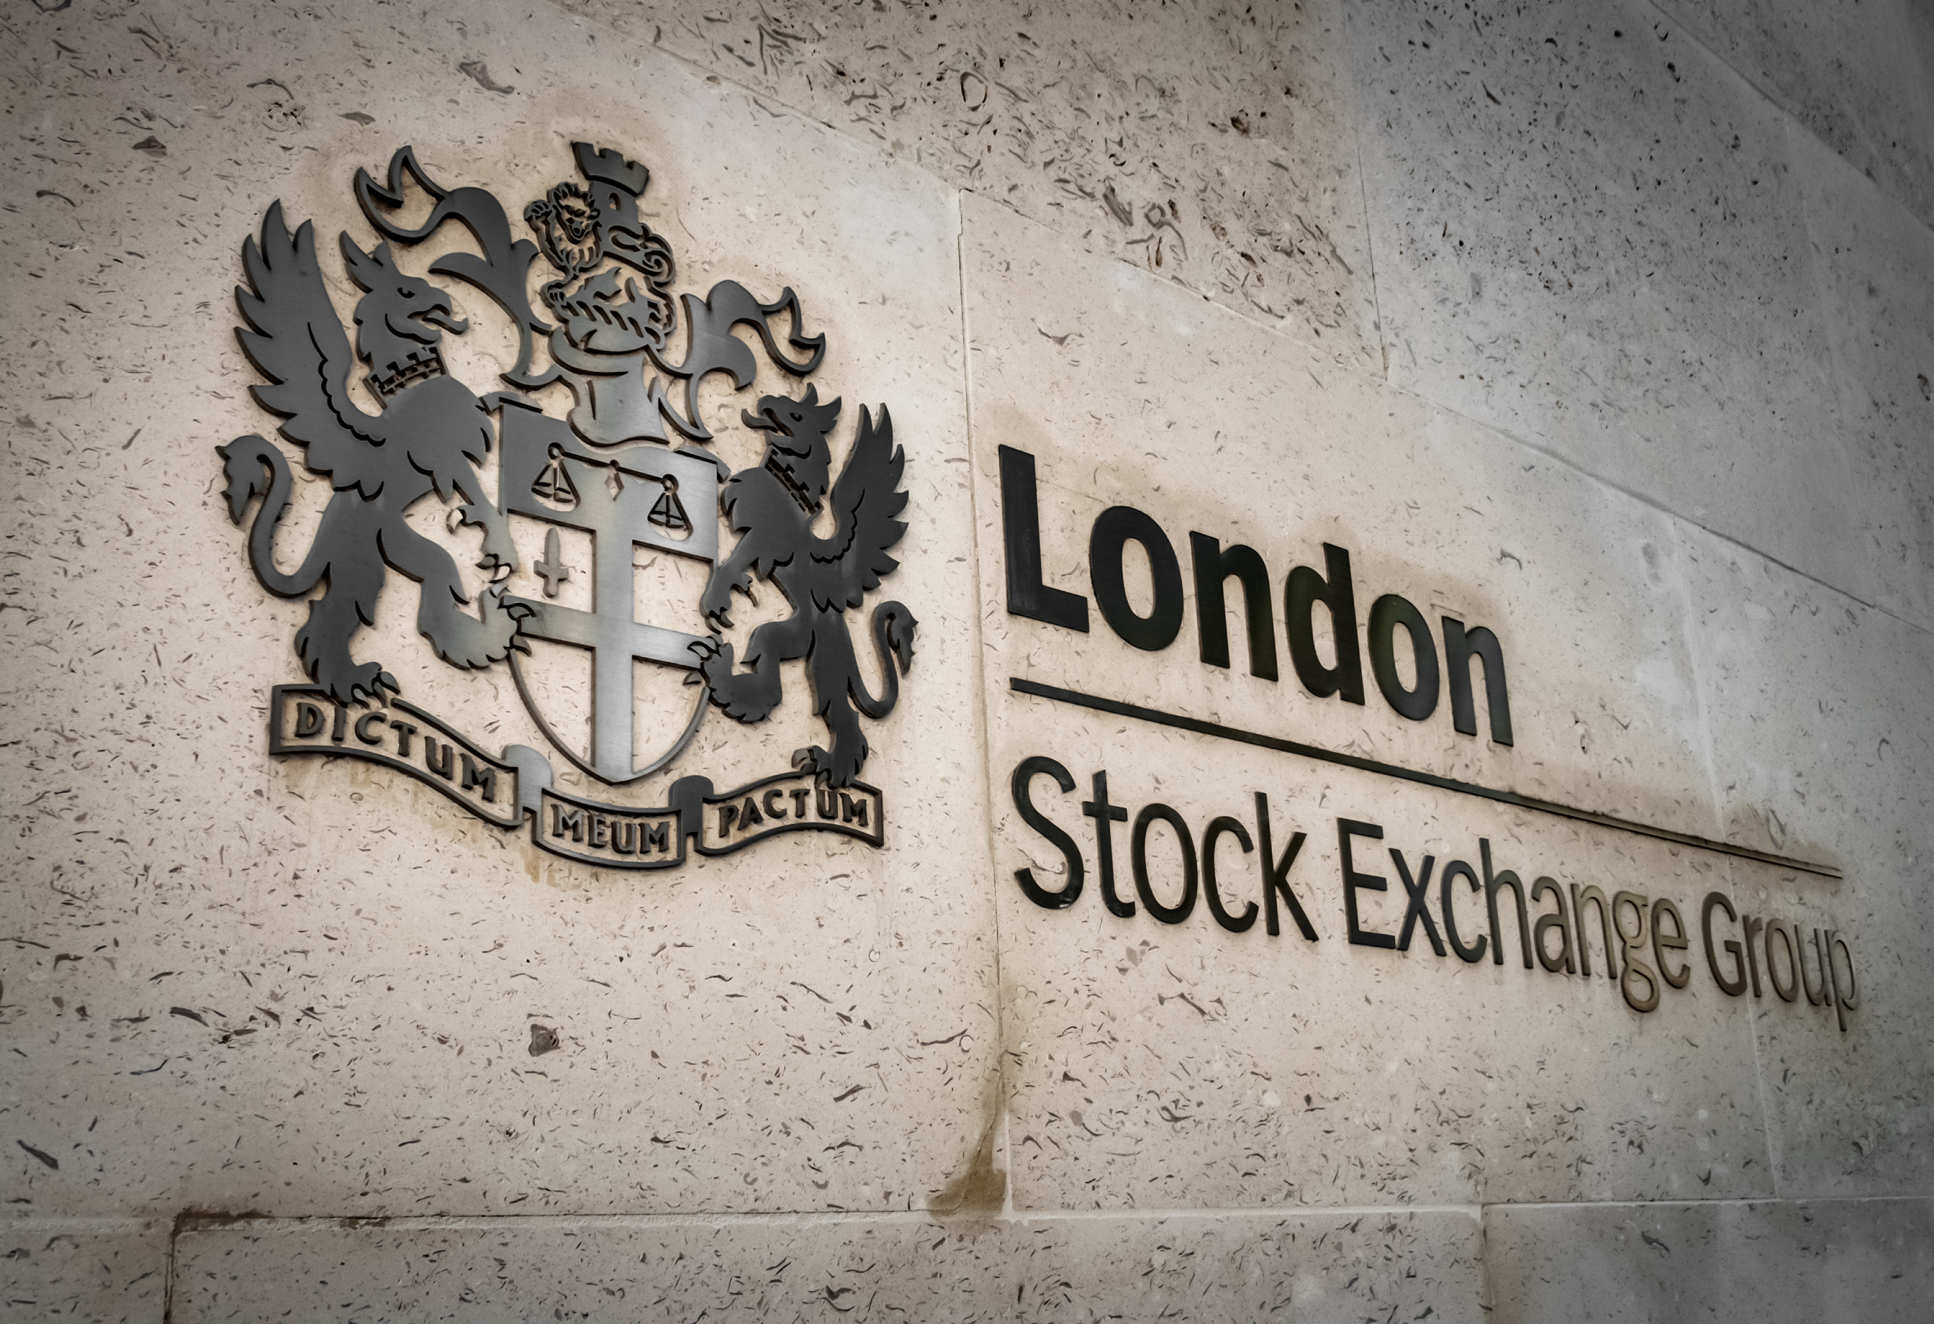 London Stock Exchange Group sign